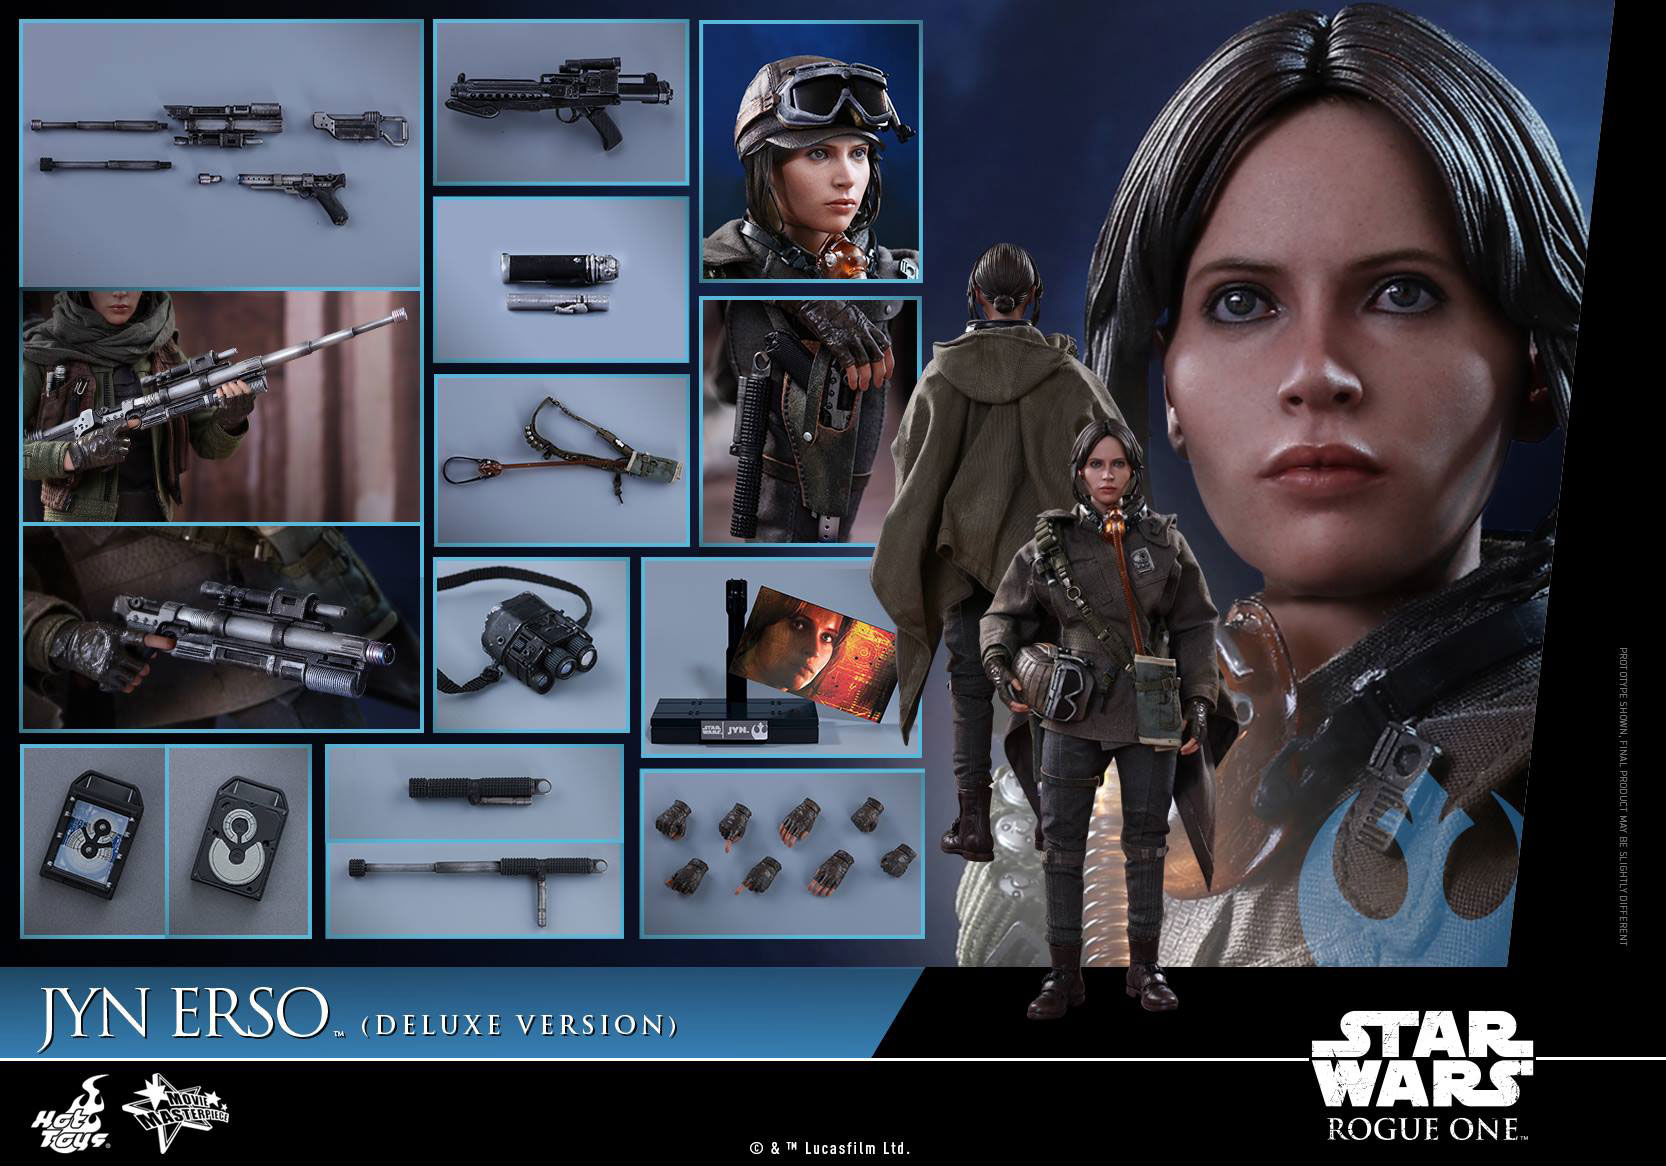 hot-toys-star-wars-rogue-one-figure-deluxe-version-8